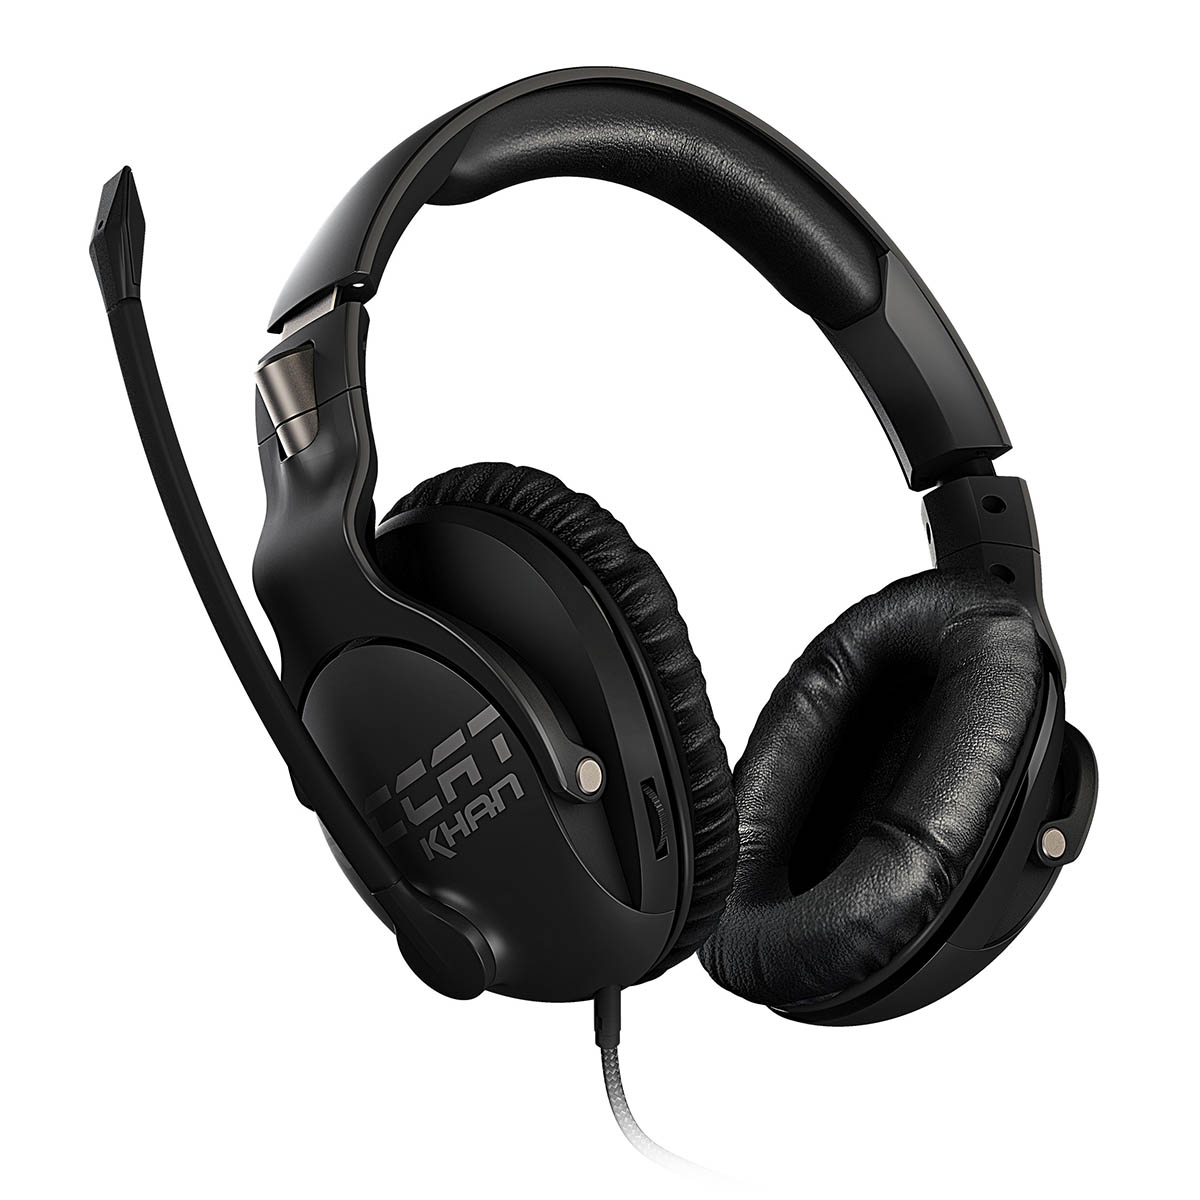 Roccat, KHAN, PRO, Competitive, High, Resolution, Gaming, Headset, (Black, Version),